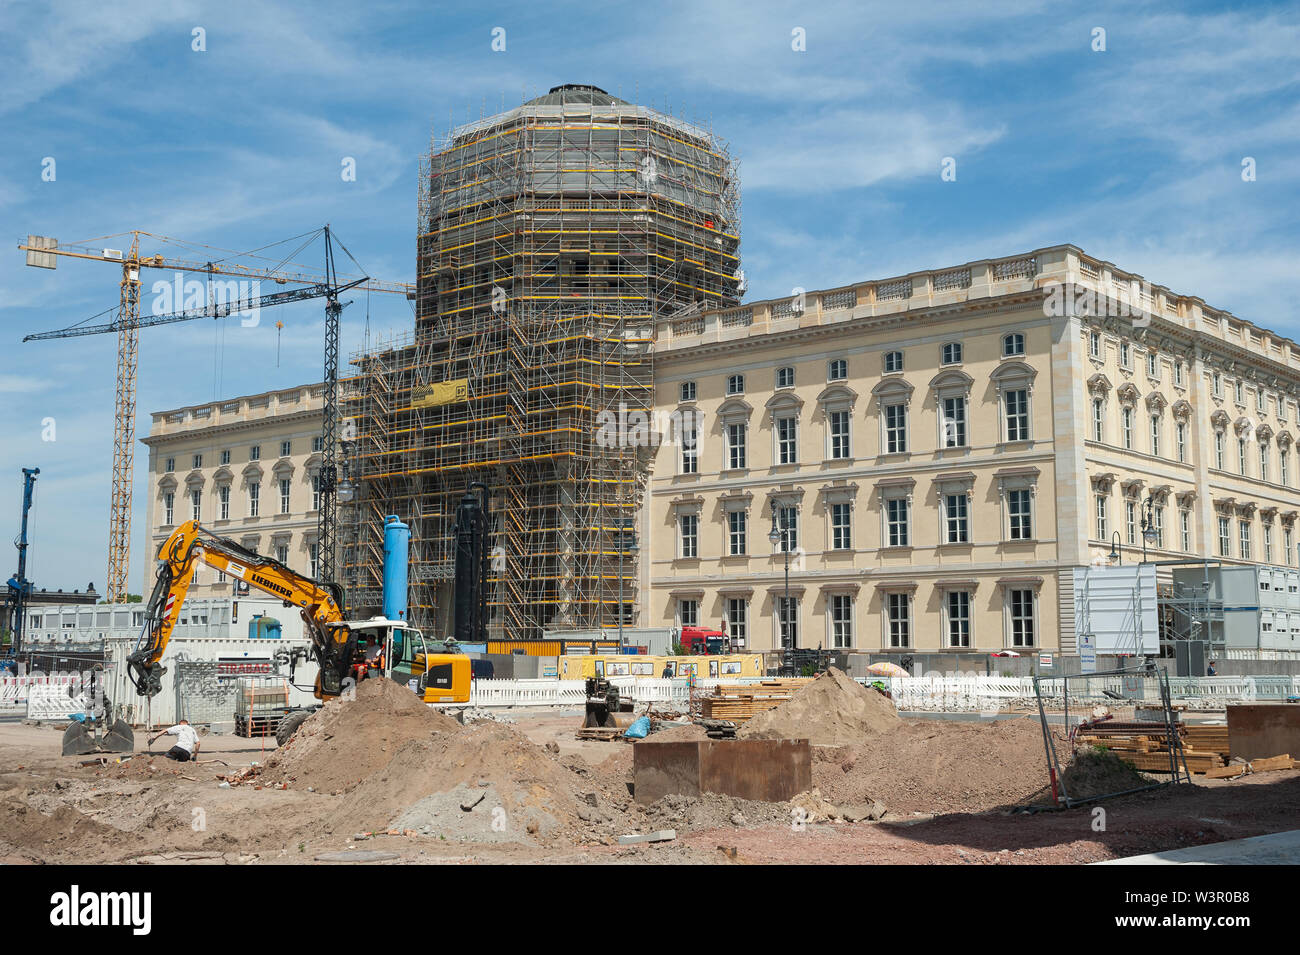 25.06.2019, Berlin, Germany, Europe - Construction site of the Berlin City Palace with the Humboldt Forum at Schlossplatz on Museum Island in Mitte. - Stock Image